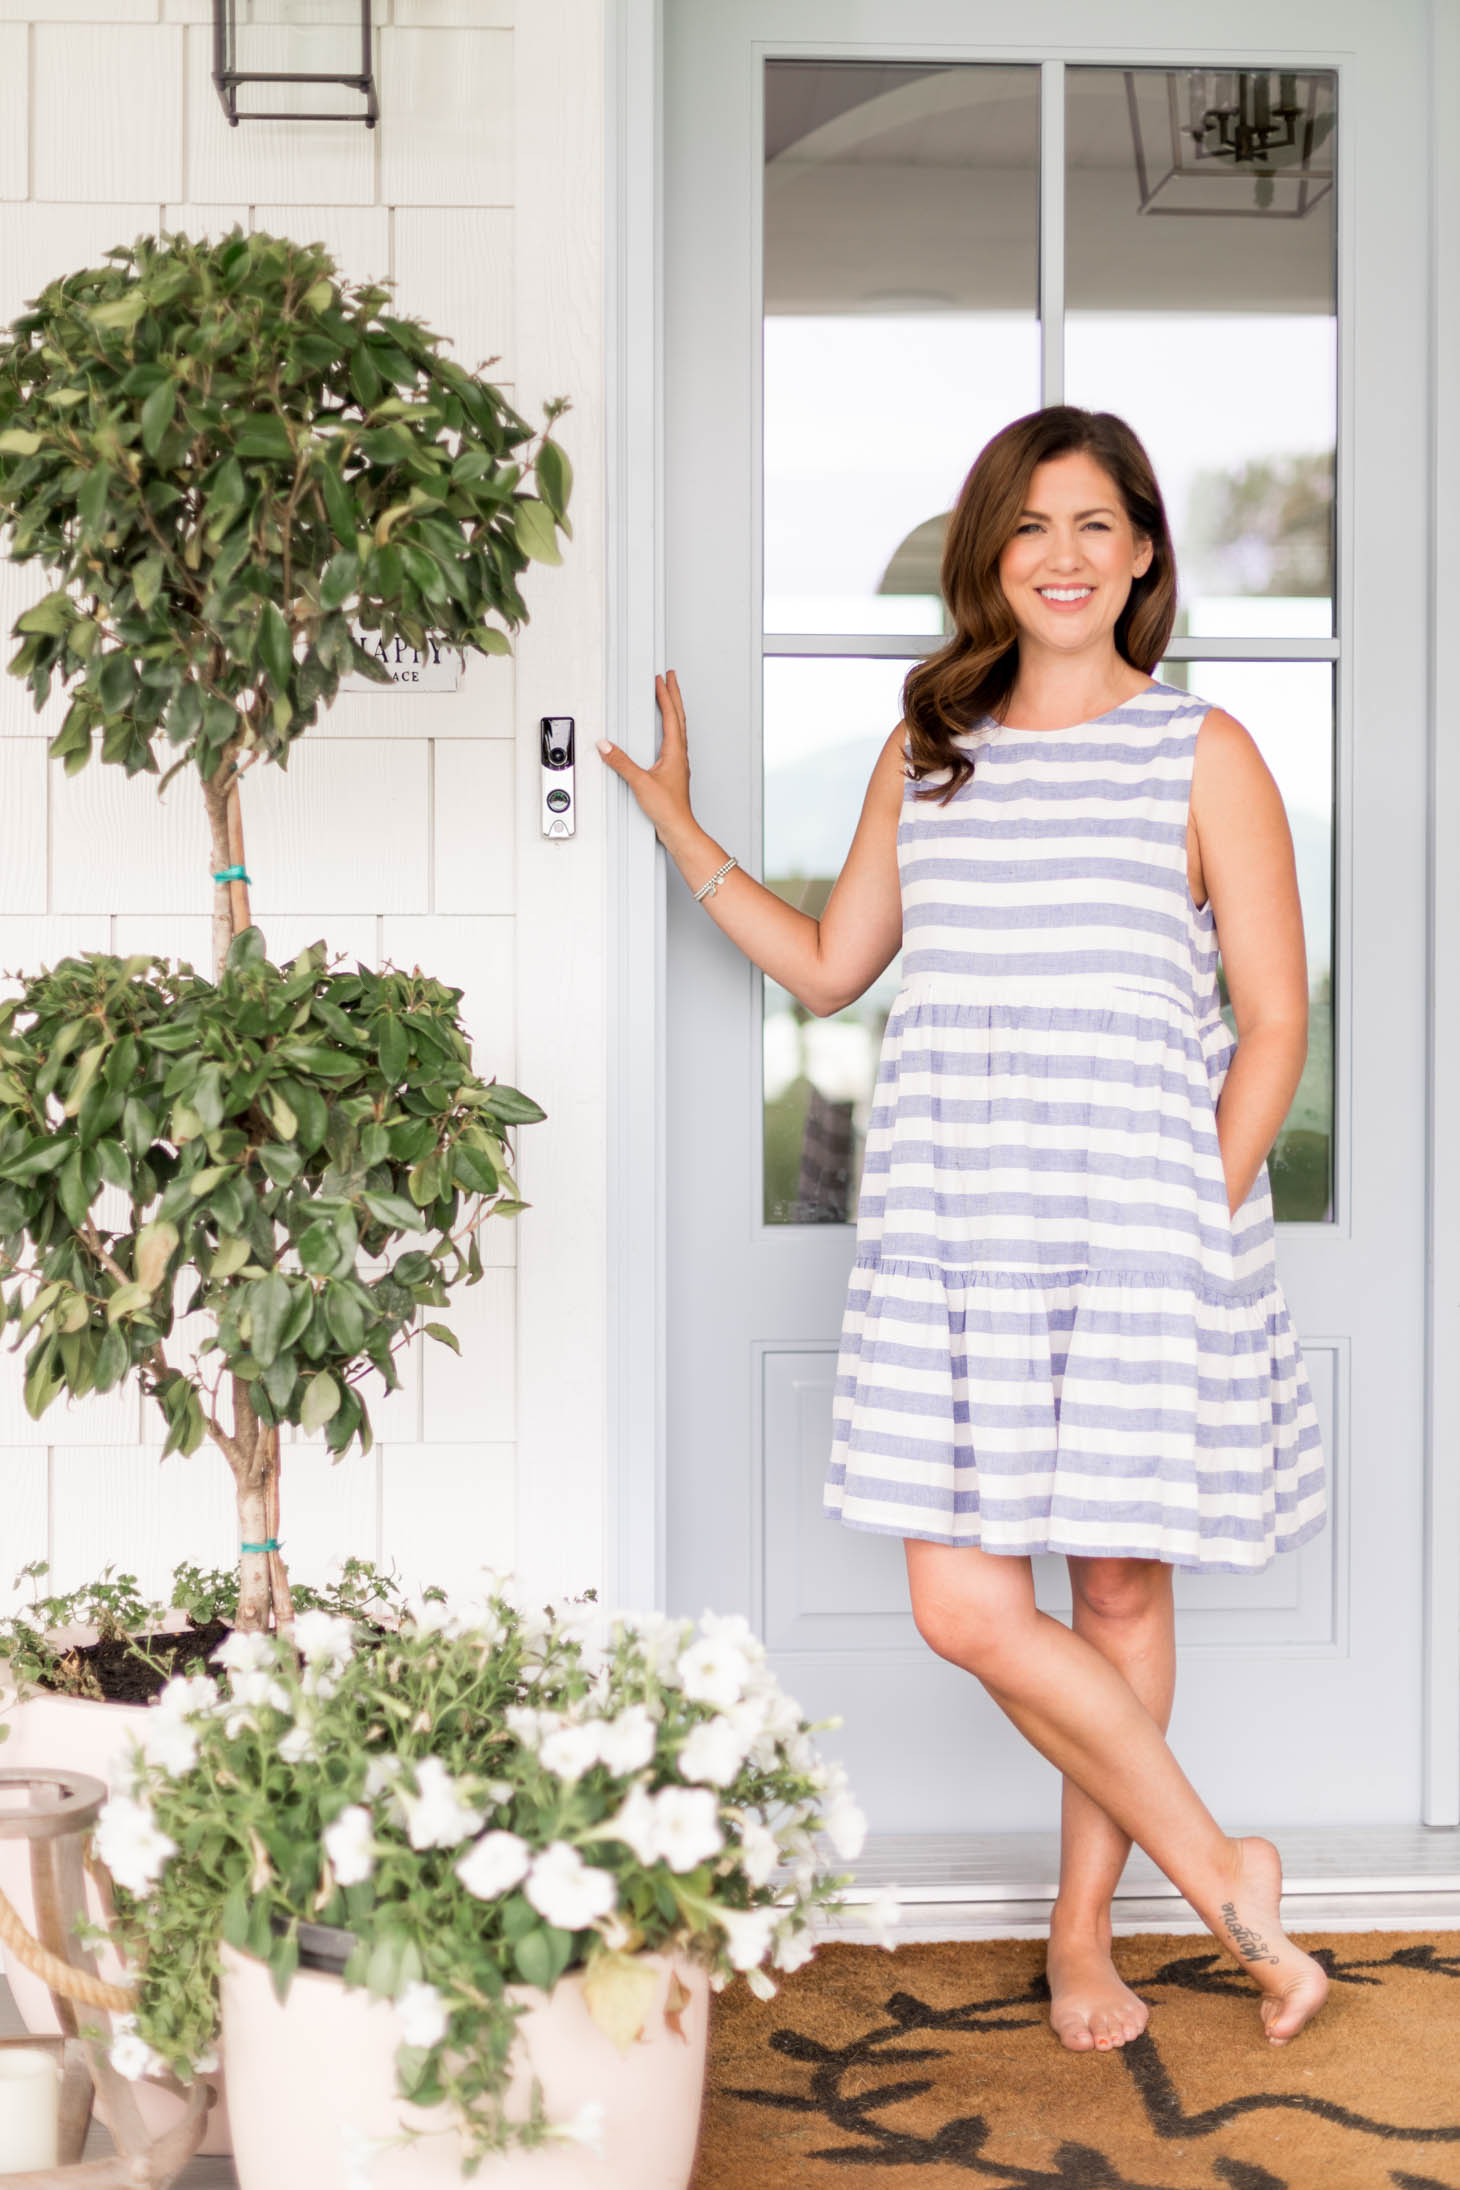 Jillian Harris How We Stay Connected to Our Home